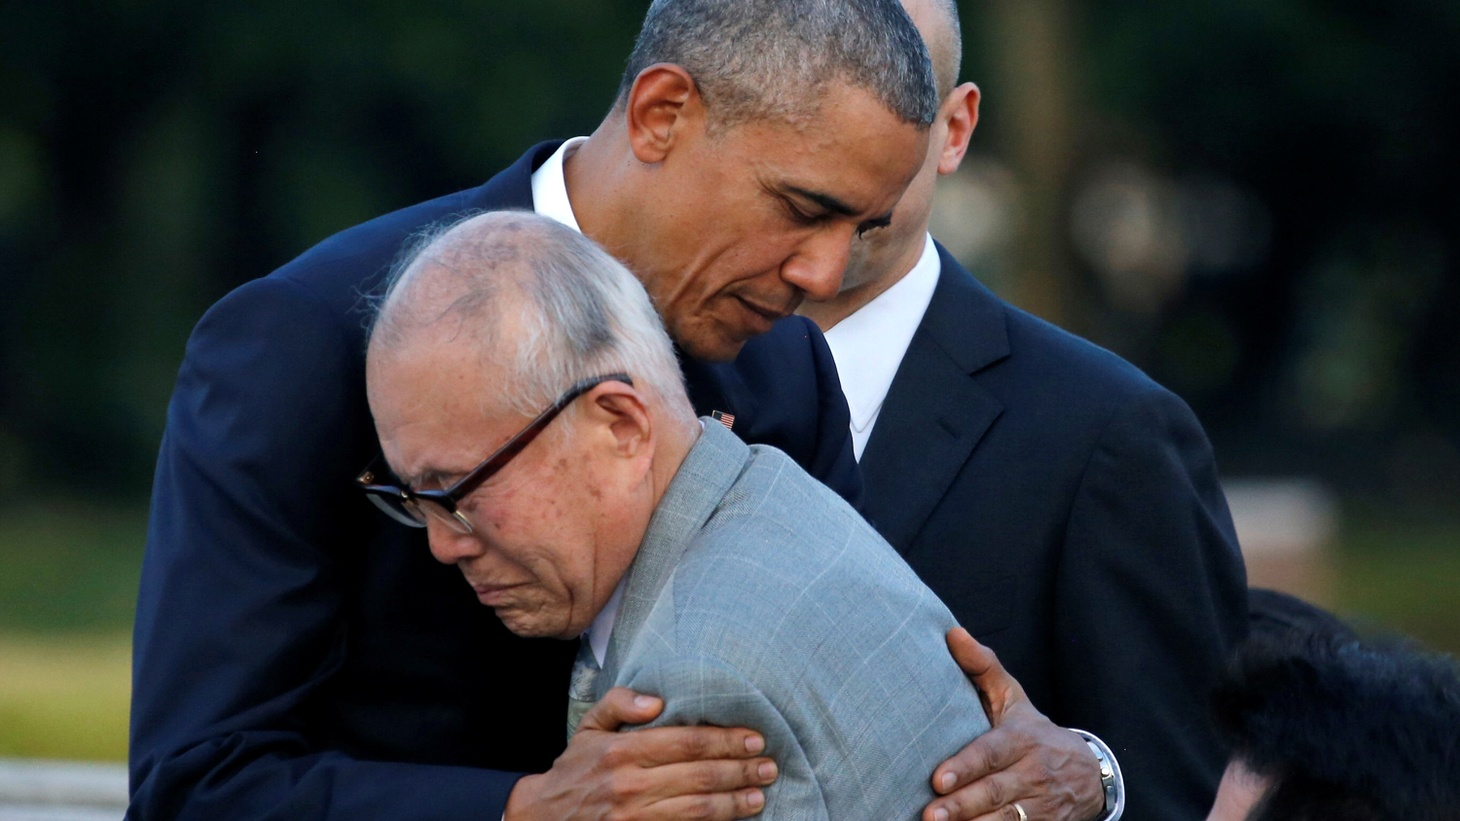 Barack Obama is the first sitting US President to visit Hiroshima. He spoke with emotion as he acknowledged the role America played 70 years ago in dropping nuclear bombs first on Hiroshima and then, three days later, on Nagasaki. From the start, Obama has framed his purpose in this trip not as an apology, but rather, a reckoning with history.